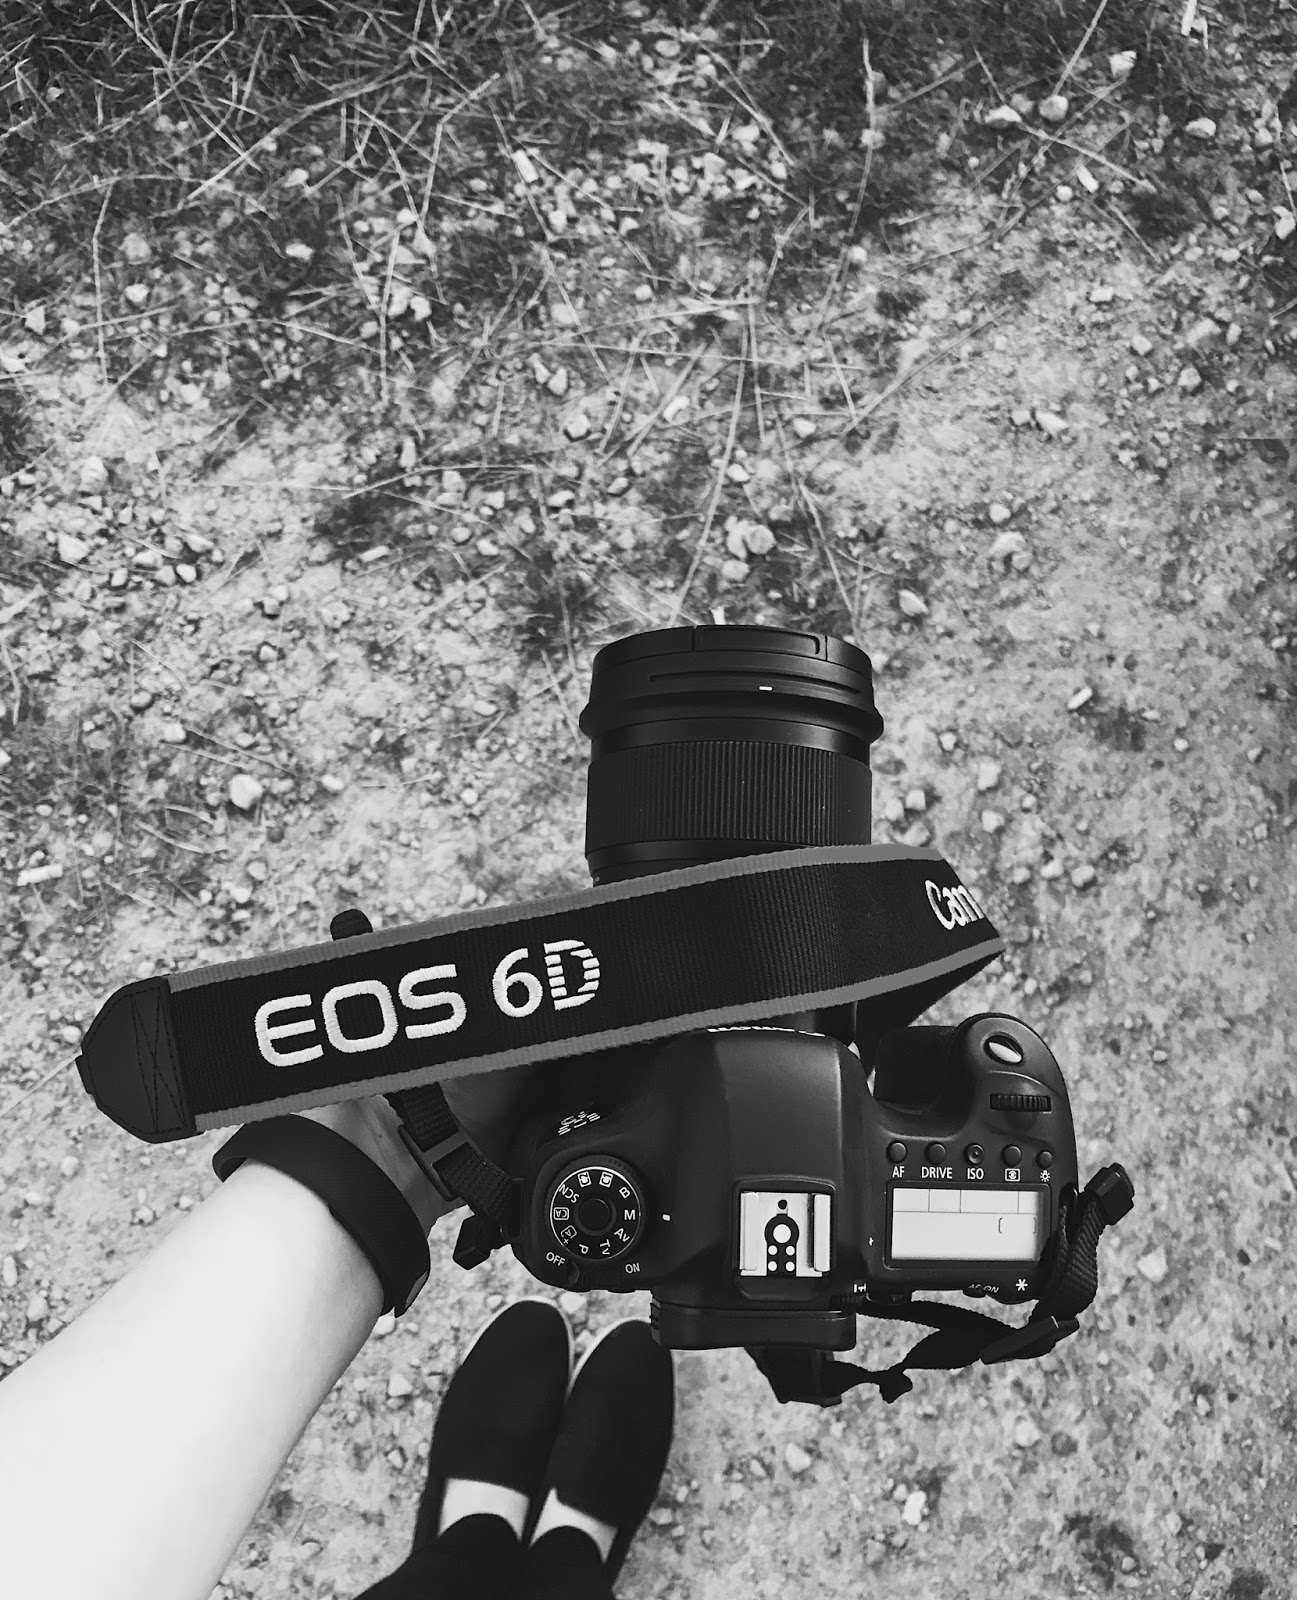 Feet, Camera, DSLR, Canon, Canon 6D, 6D, EOS, EOS 6D, Black and White, Alport, Alport Heights, Photography, Photography Bloggers, Katie Writes Blog, Katie Writes,